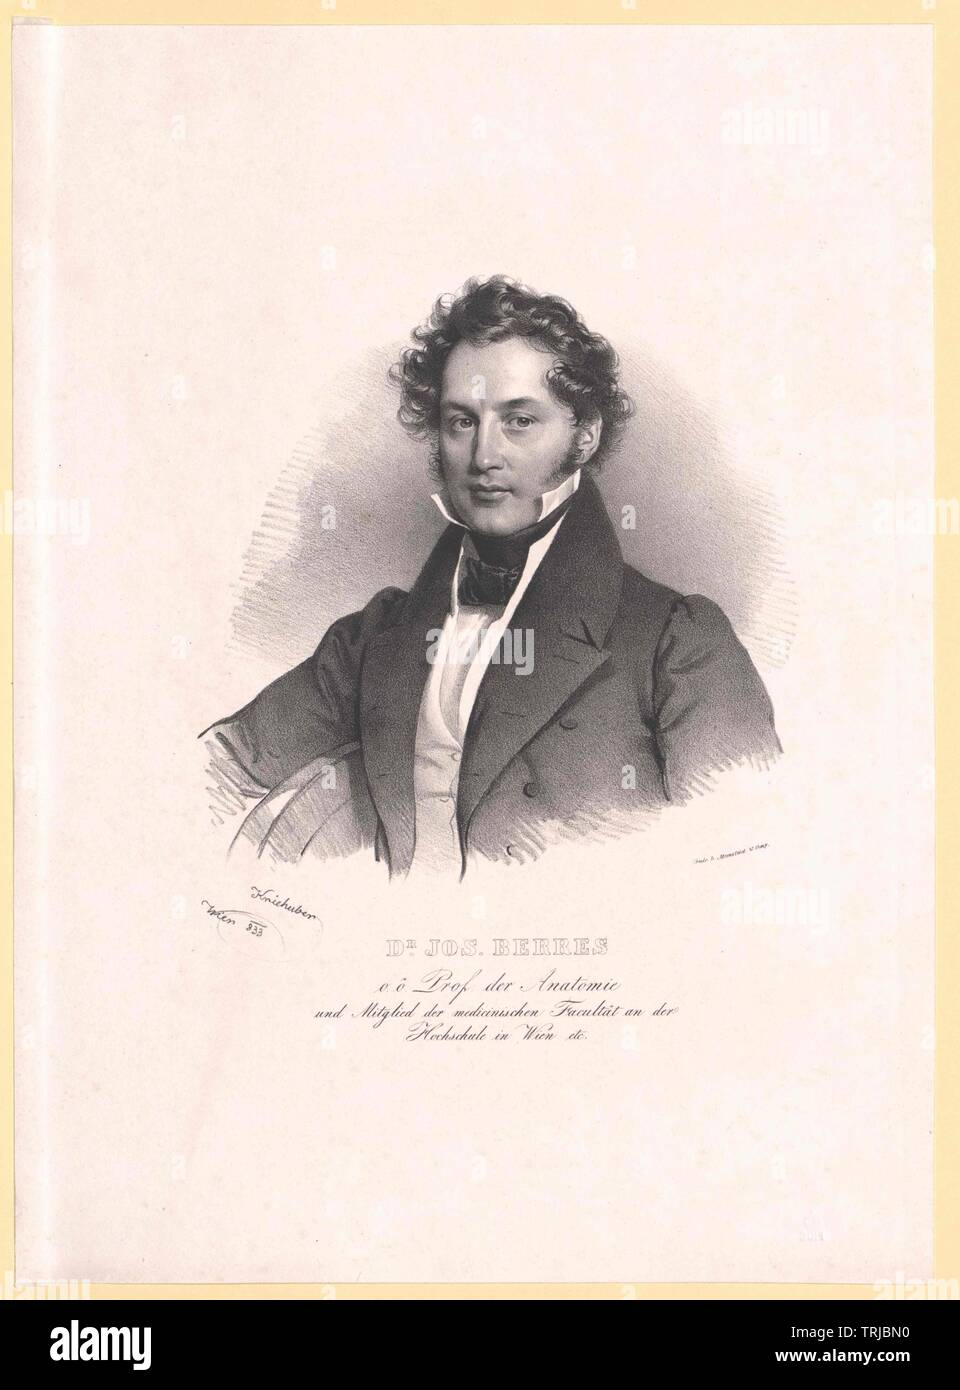 Berres, Joseph von, médico austríaco, profesor de anatomía en las universidades de Viena y de Lviv (1831 et sequentes) peerage 1842 09 21-Clearance-Info-Not-Available Additional-Rights Imagen De Stock